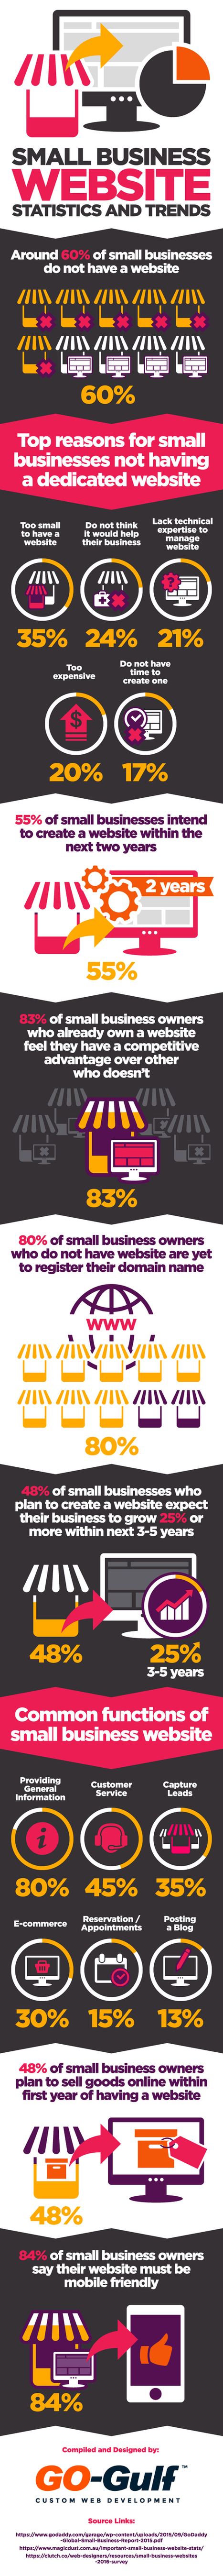 Not Got a Website Yet? 20+ Stats & Trends You Need to Know [Infographic]   Top Tech News   Scoop.it